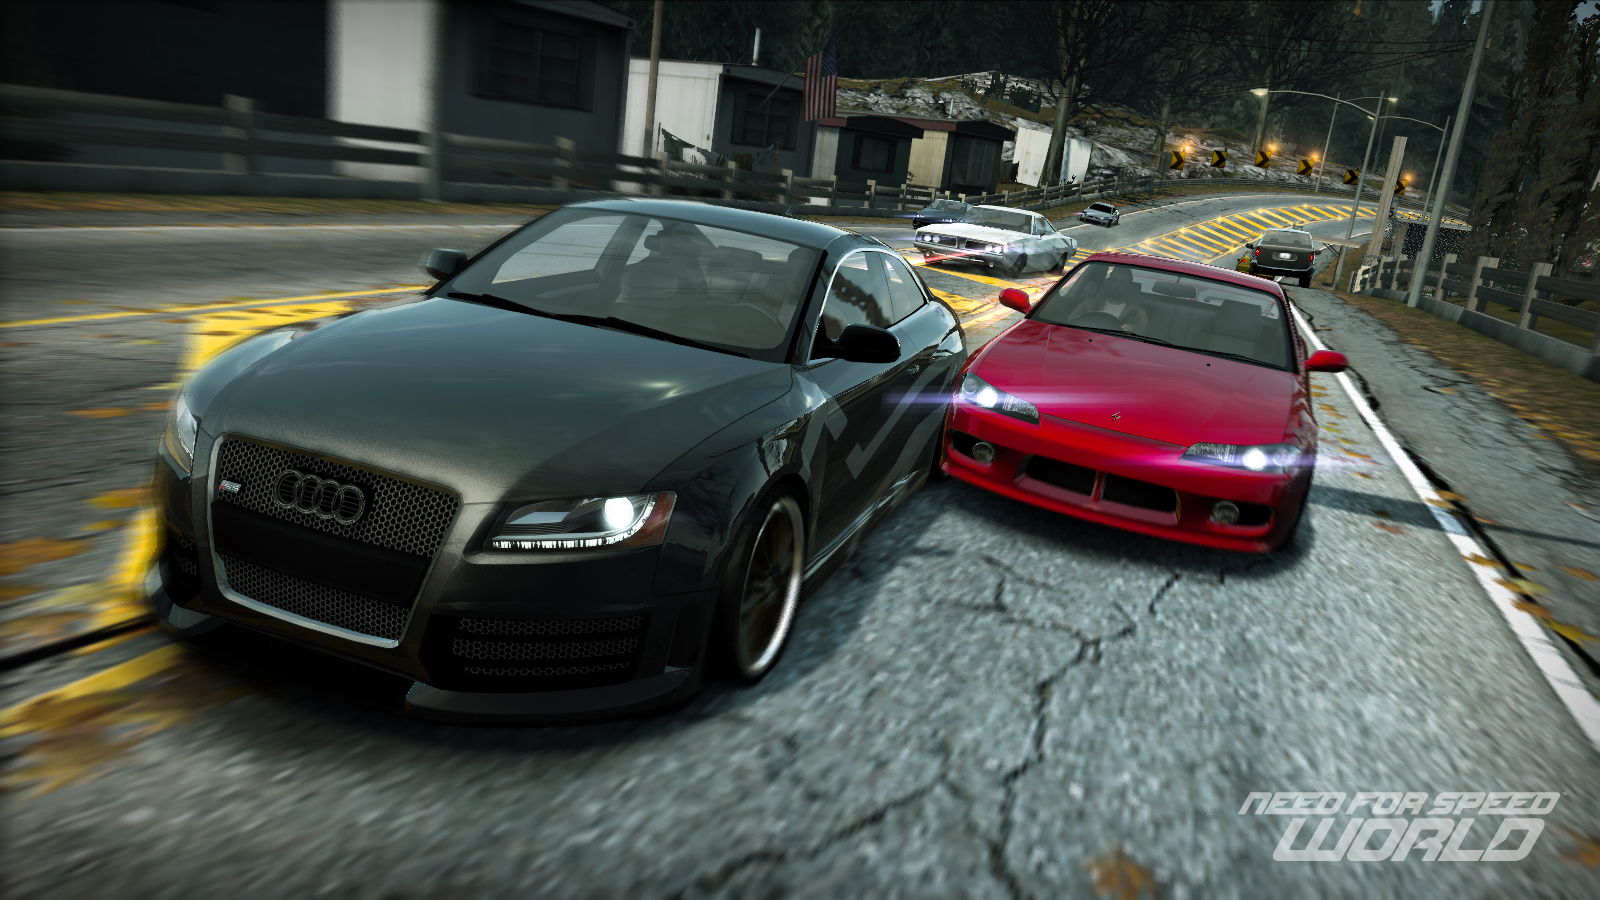 Need for speed world need for speed wiki fandom powered by wikia gumiabroncs Images